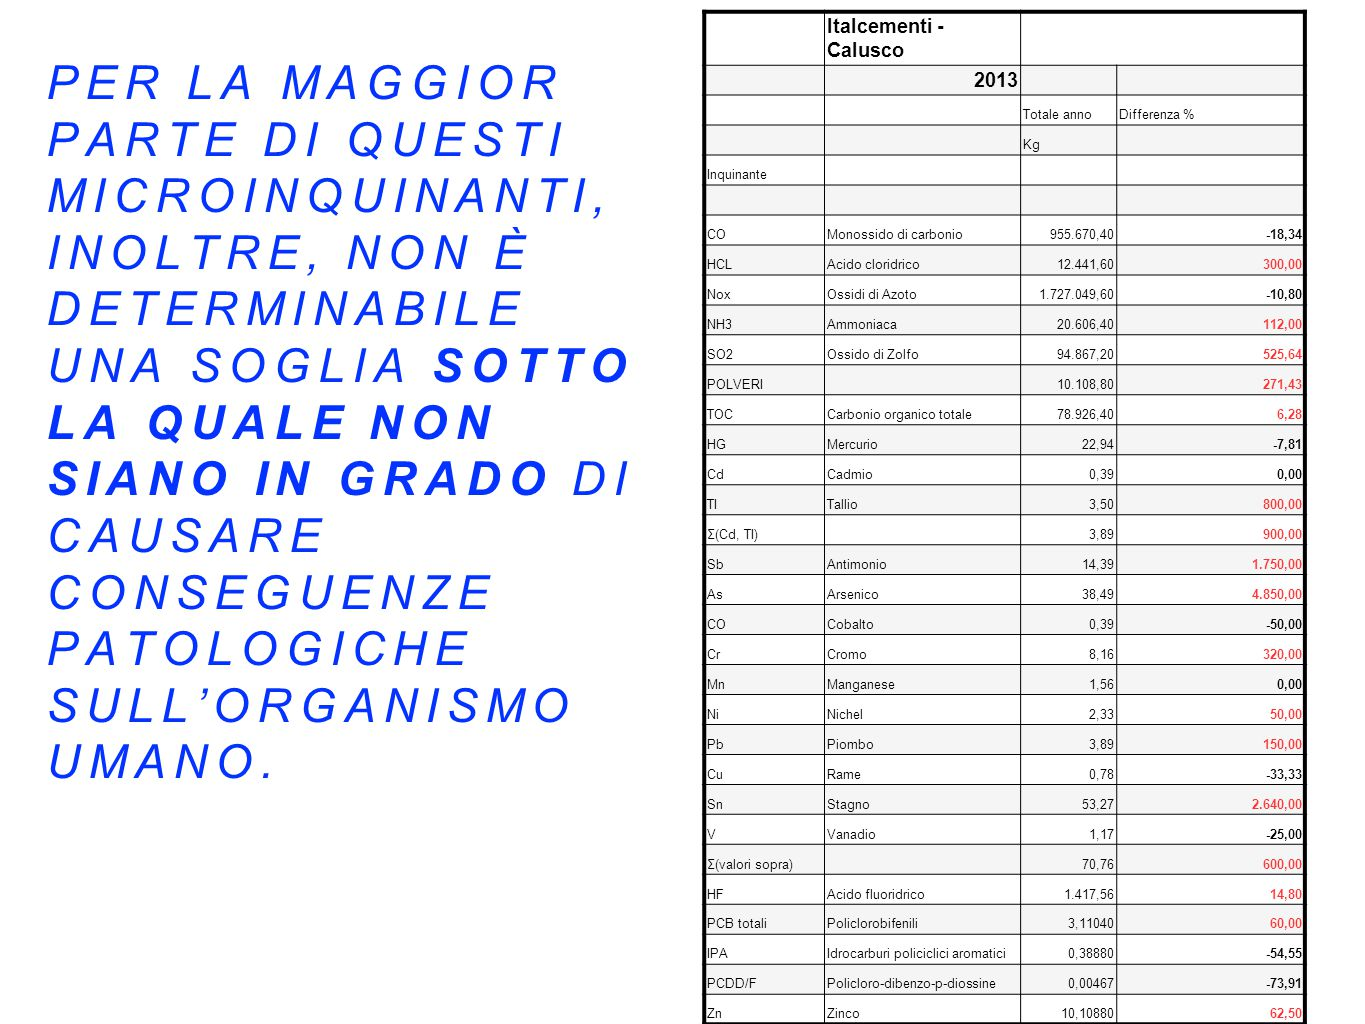 Italcementi - Calusco 2013. Totale anno. Differenza % Kg. Inquinante. CO. Monossido di carbonio.